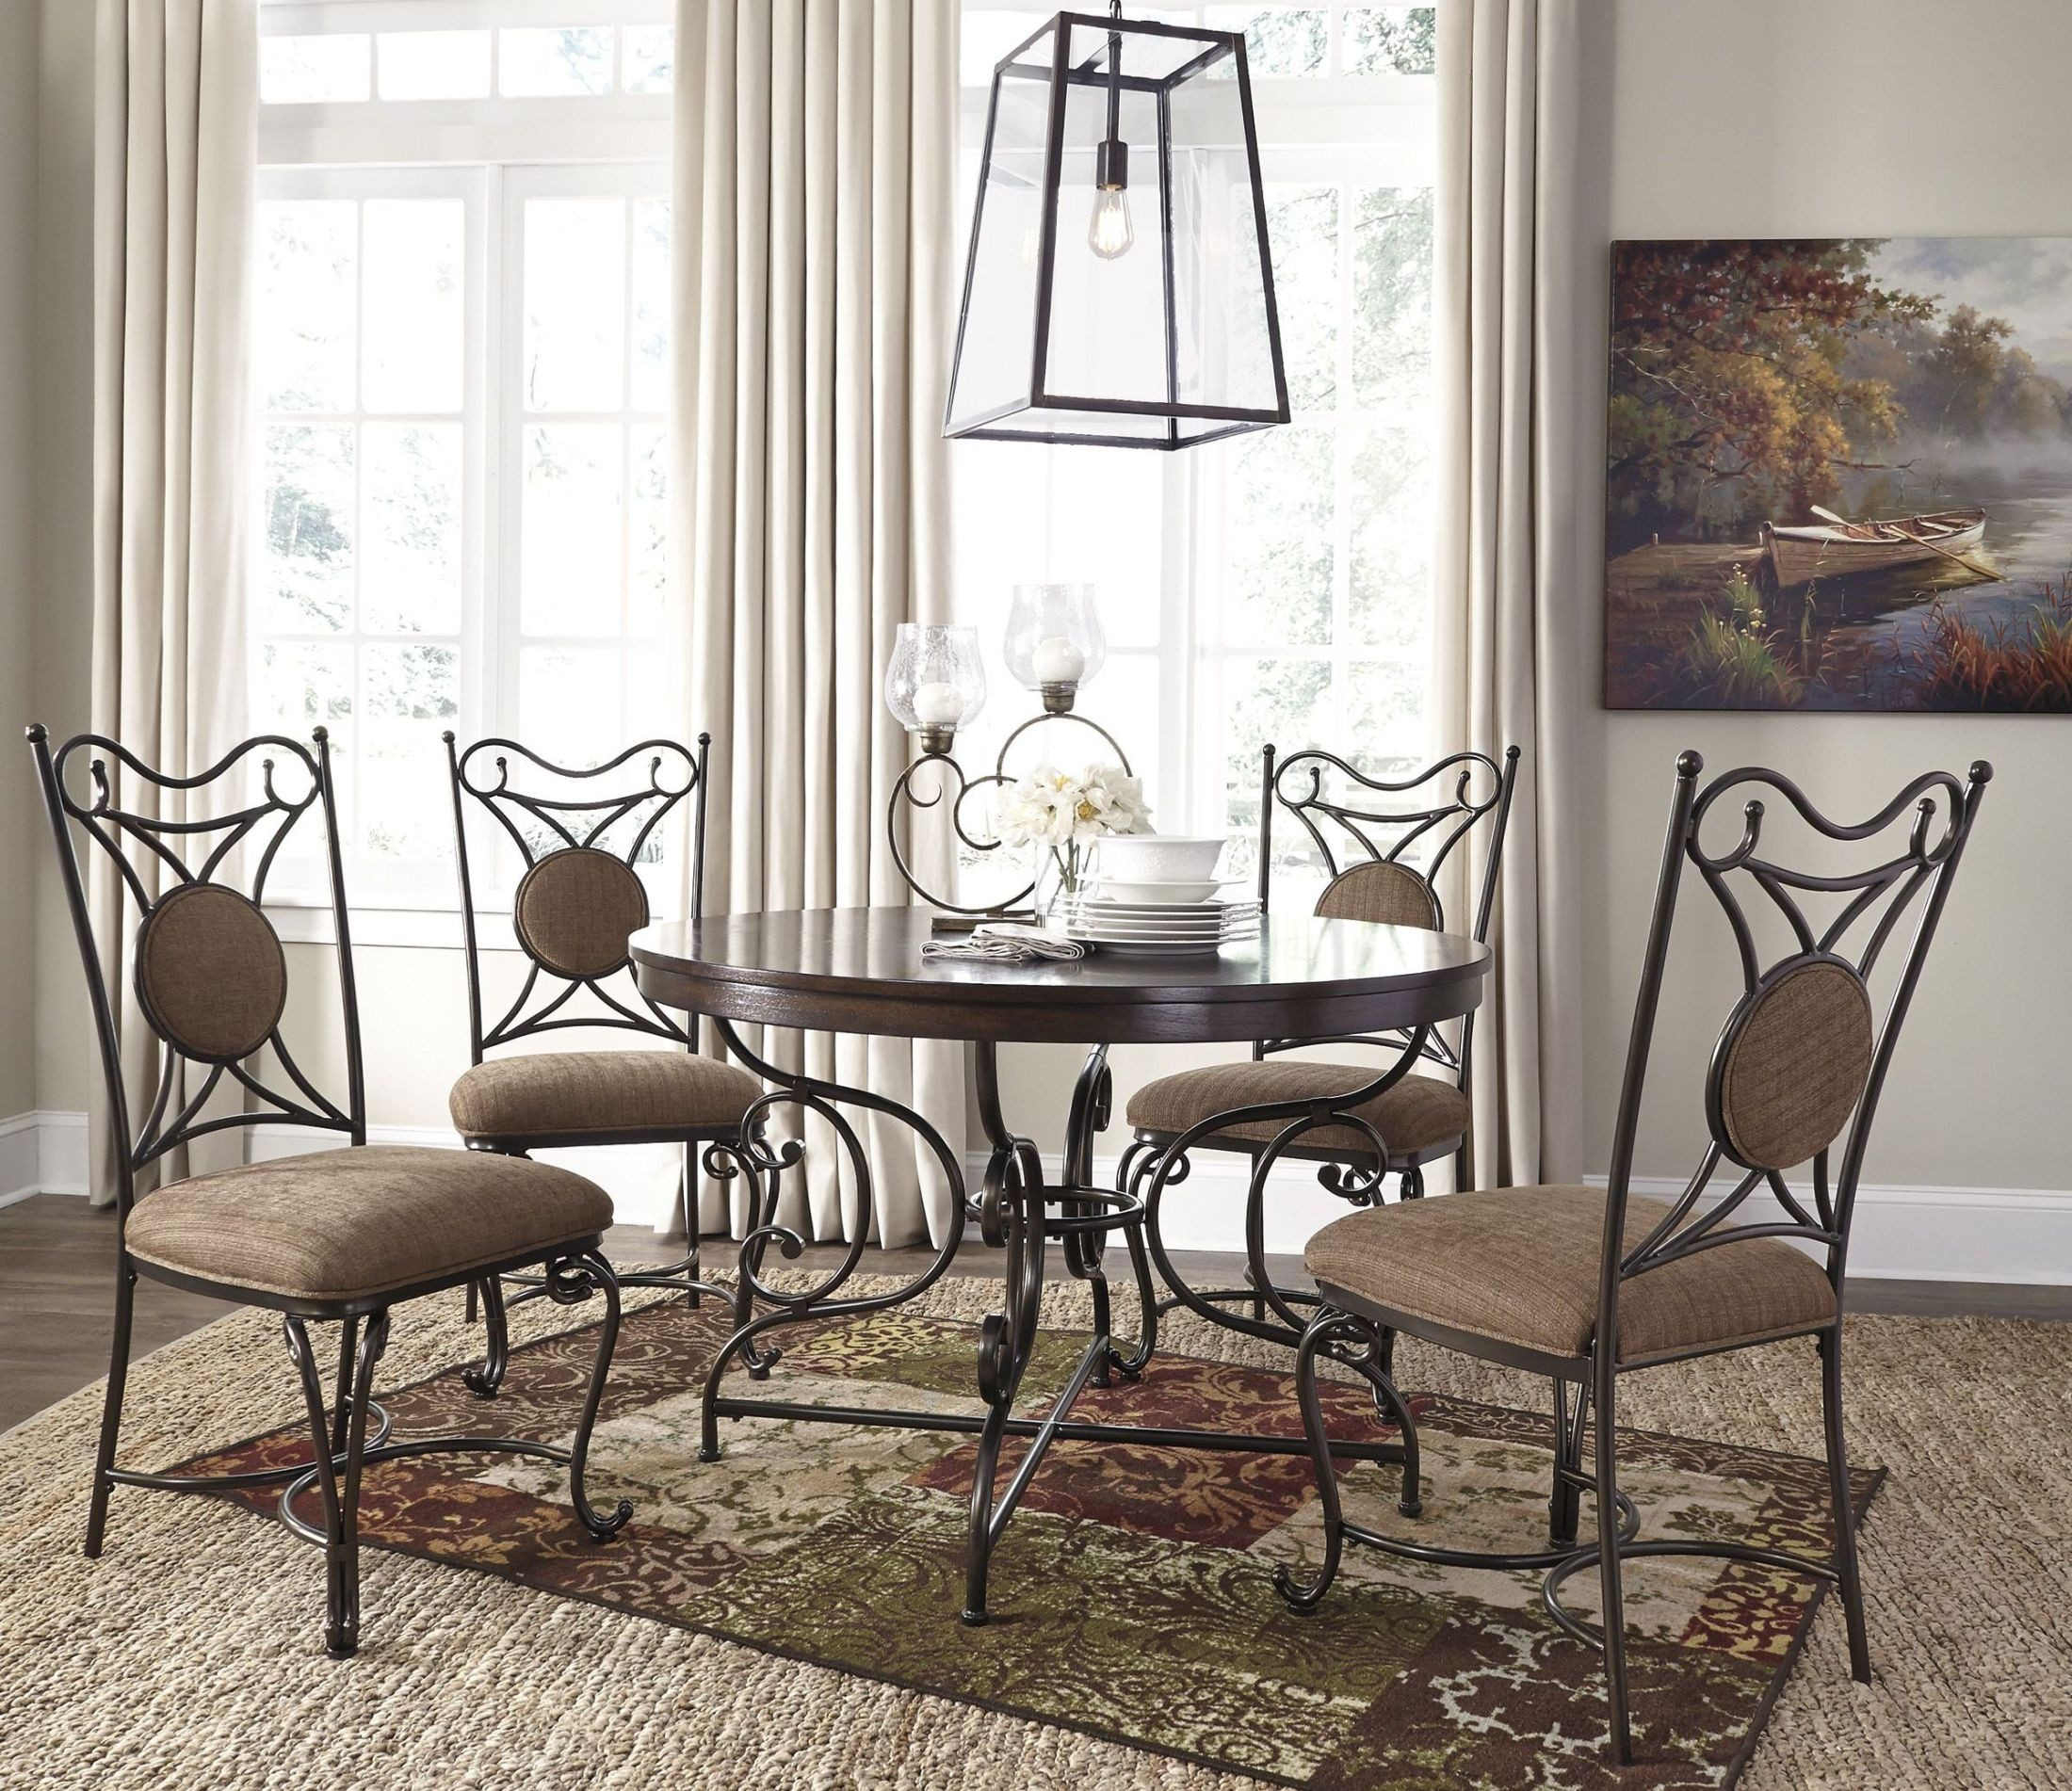 Round Dining Room Sets: Brulind Brown Round Dining Room Set From Ashley